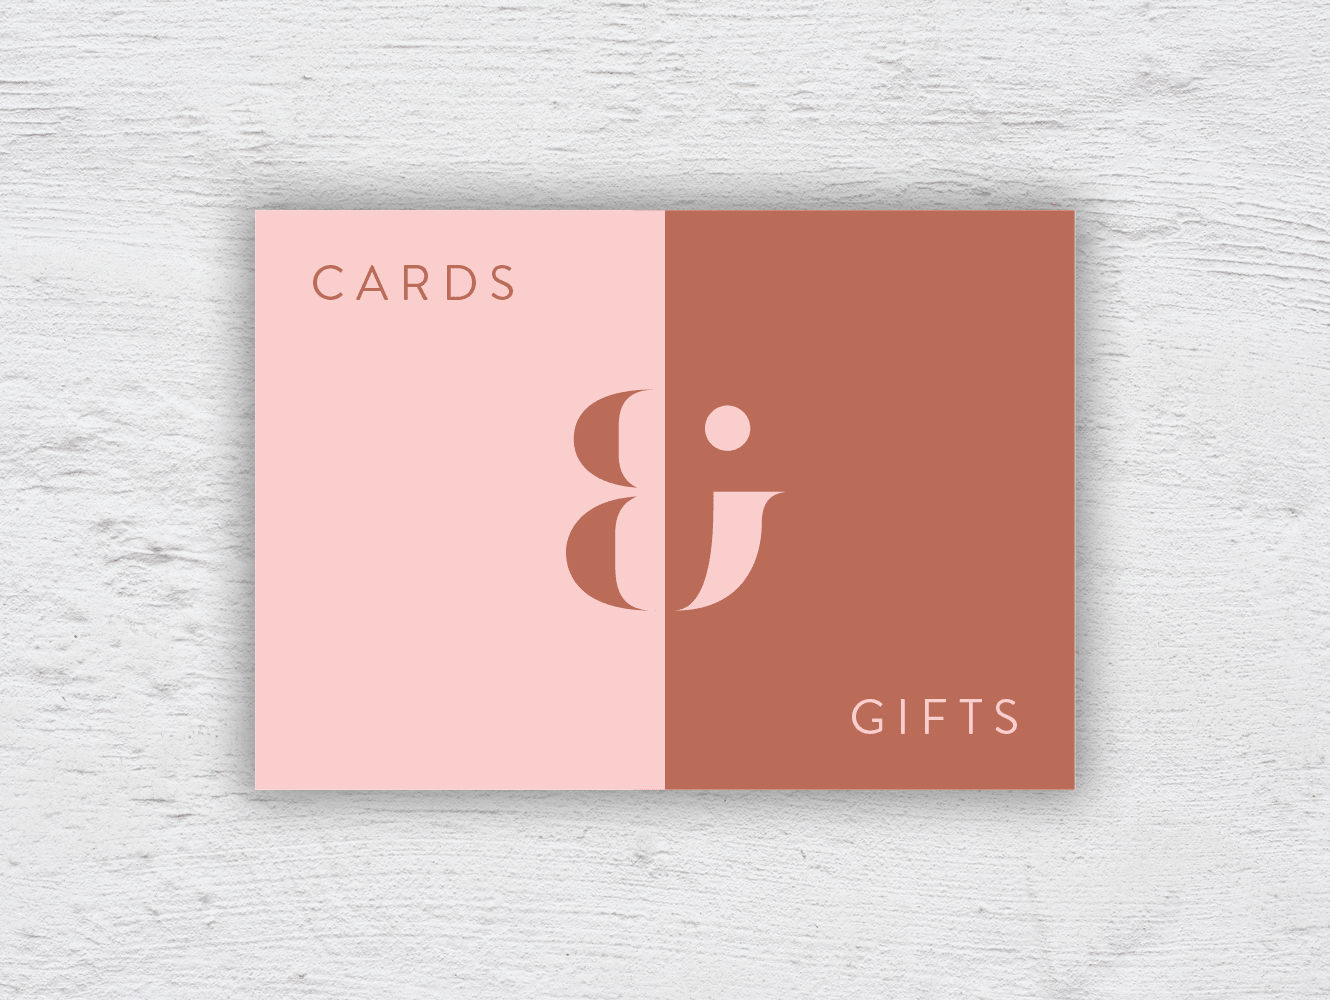 Cards + gifts sign 01